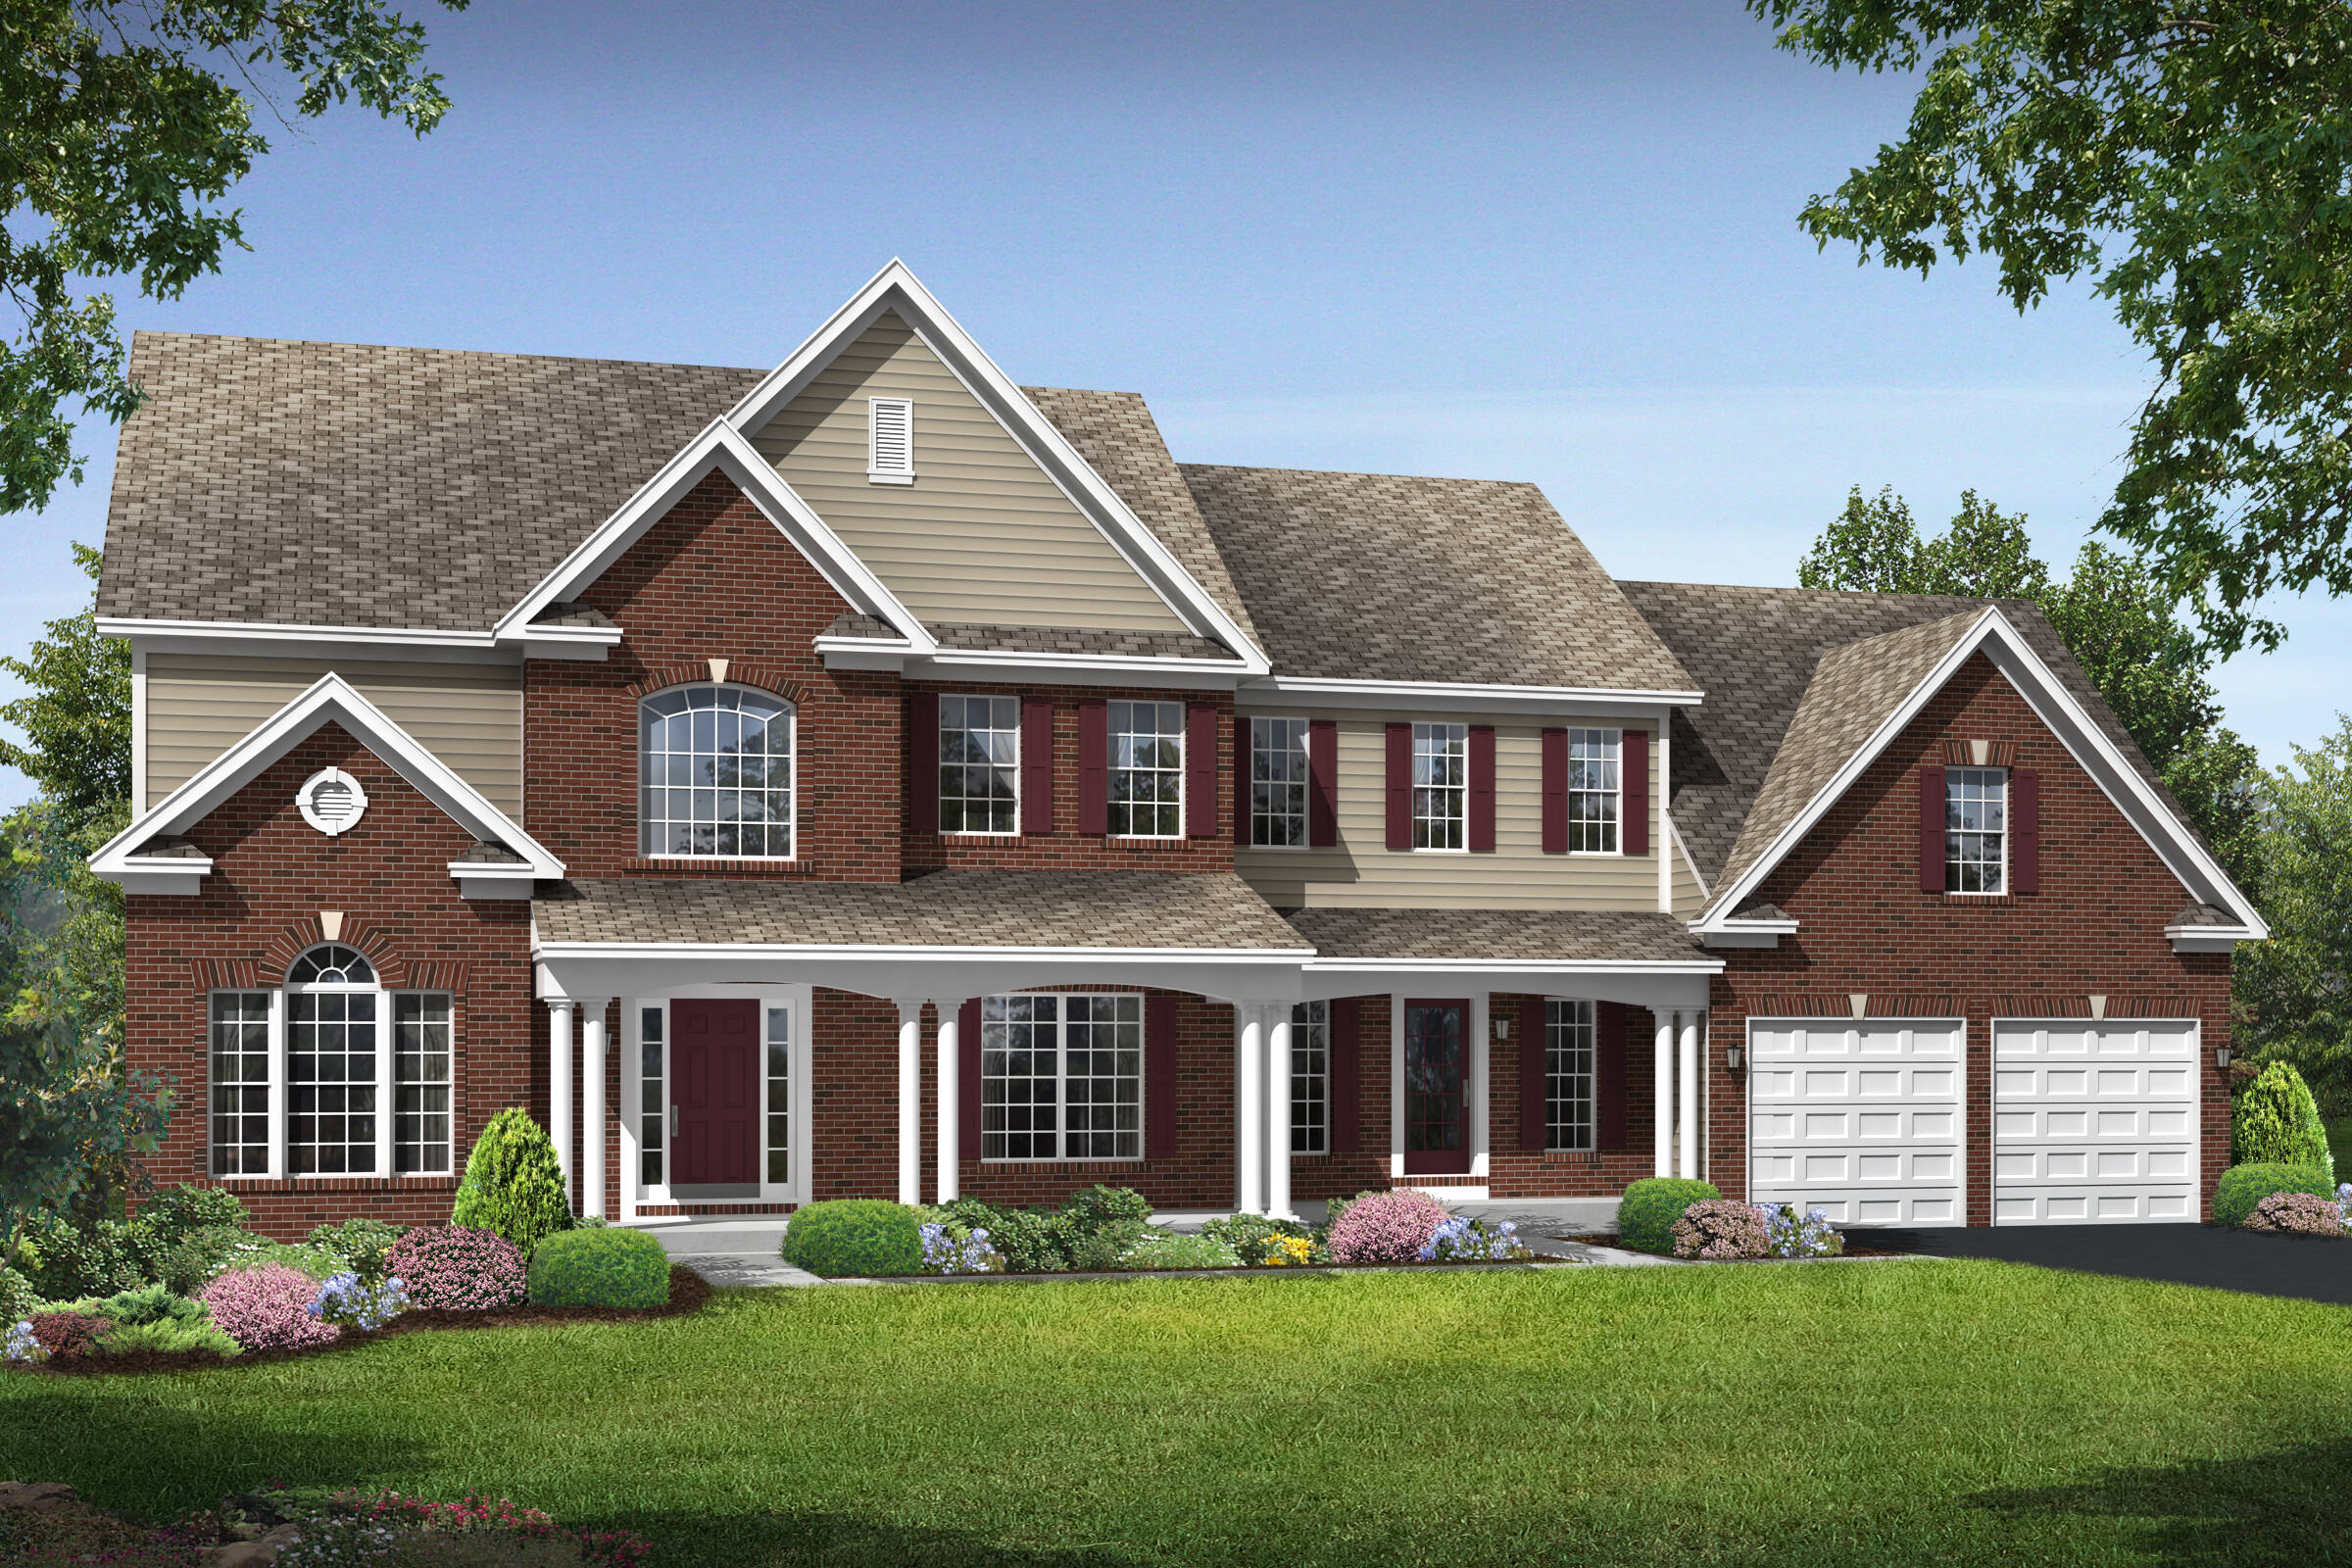 wisconsin victorian new homes at reserves at leeland station in virginia